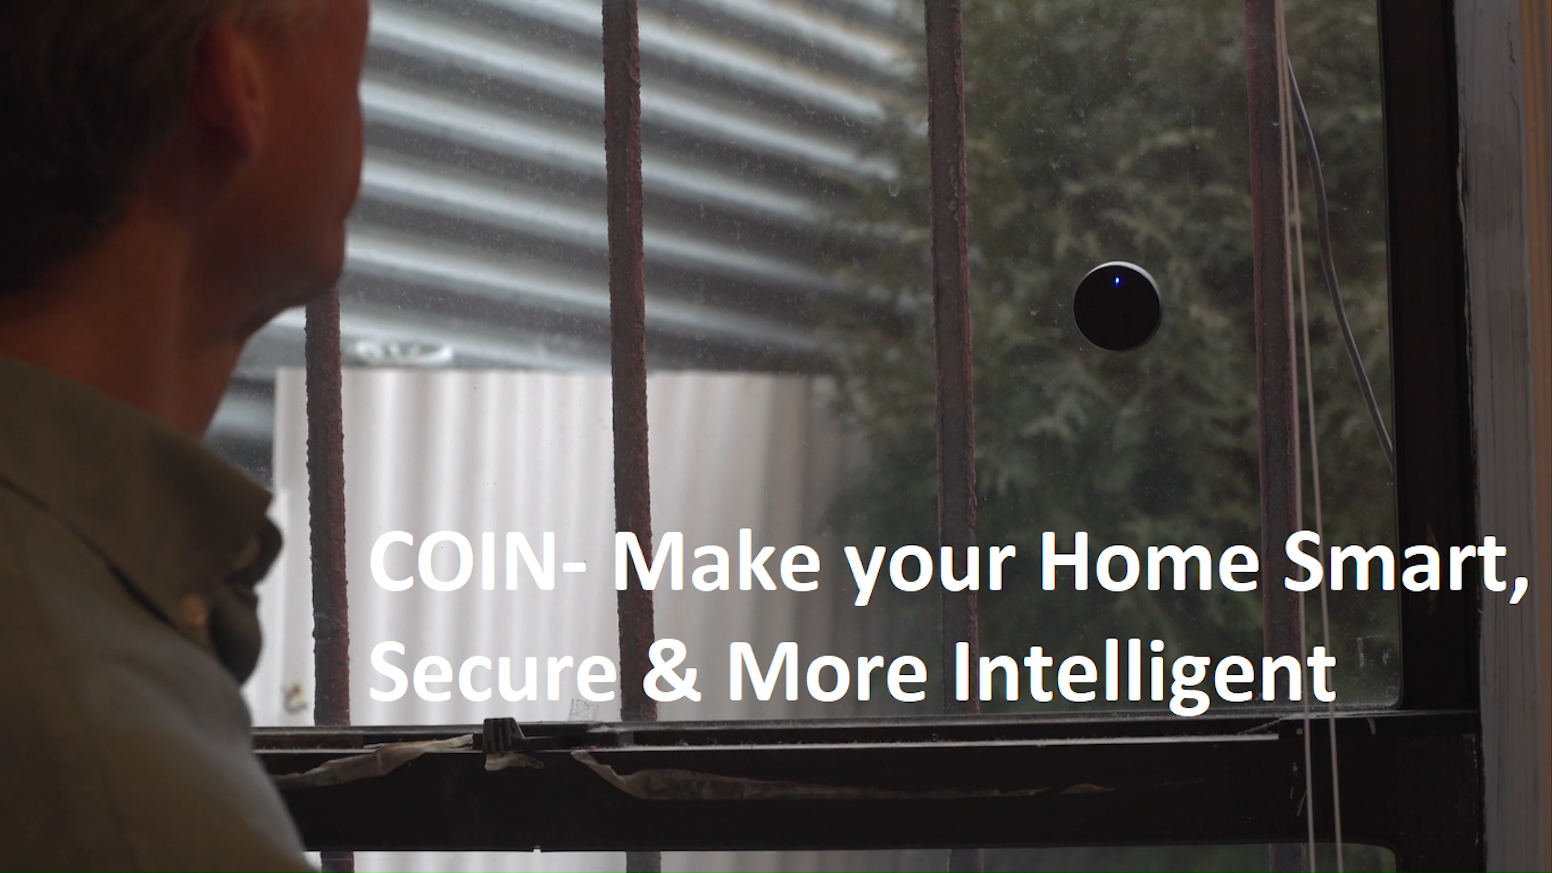 COIN is a smart HOME product for security, safety, asset & condition monitoring. You guessed it right, it is the size of a coin!